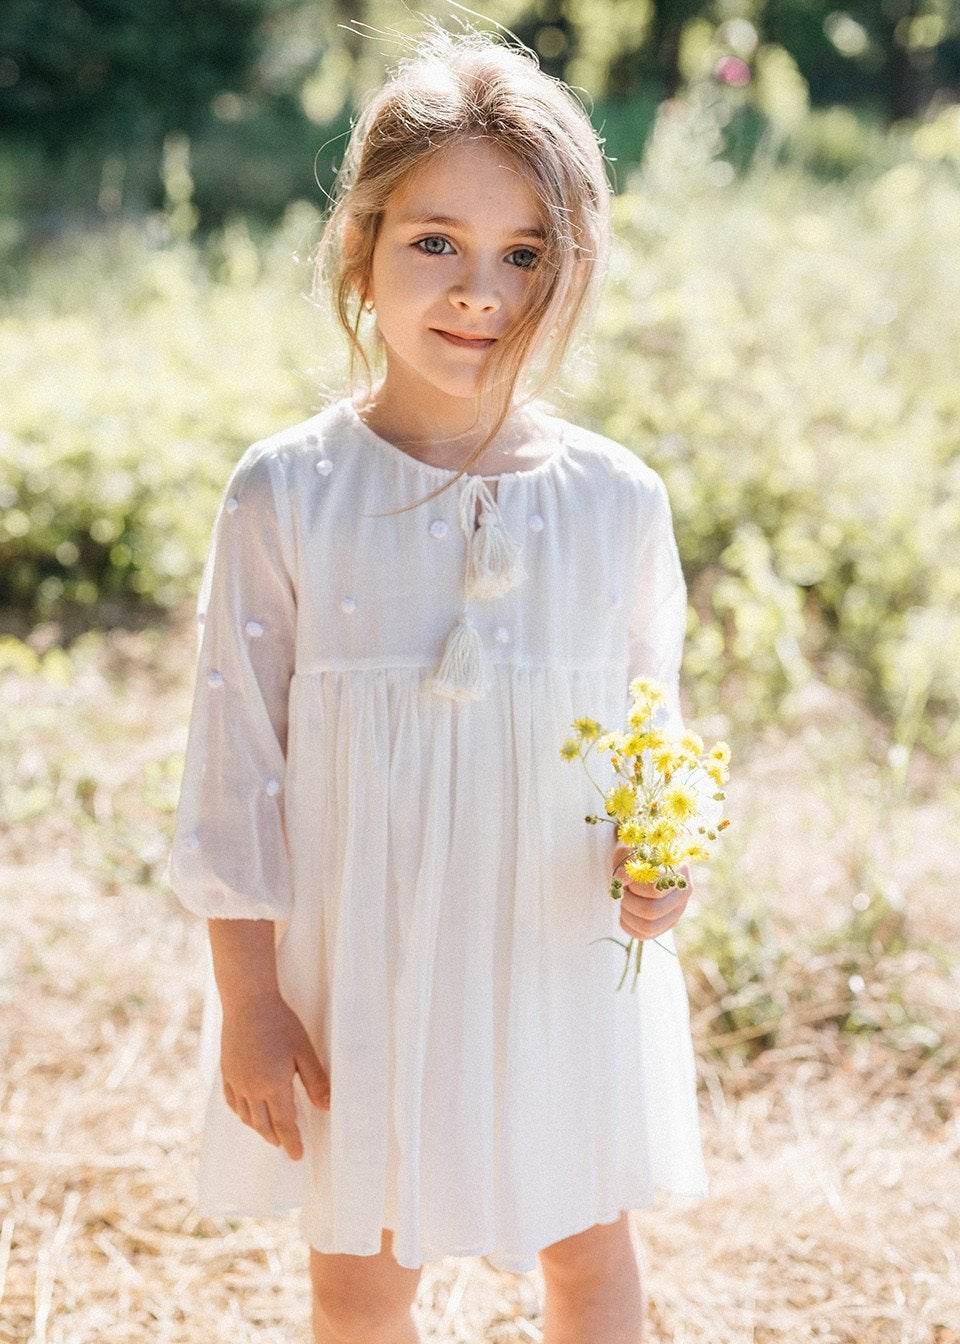 Image of the flower girl